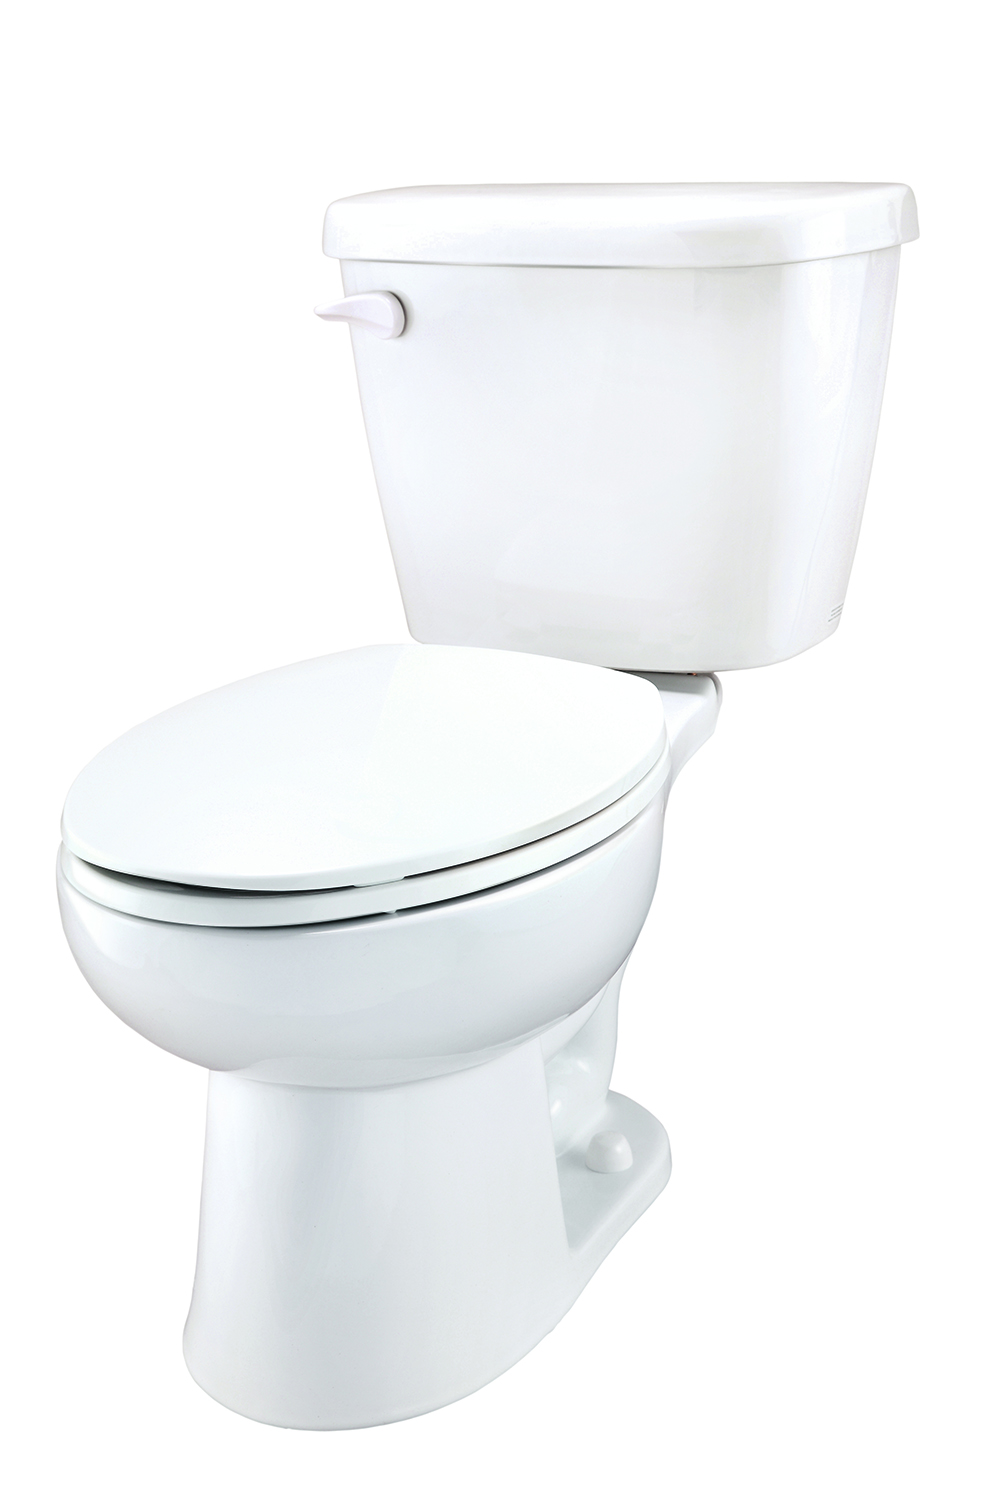 Maxwell gpf 10 rough in two piece elongated toilet for Gerbiere toit